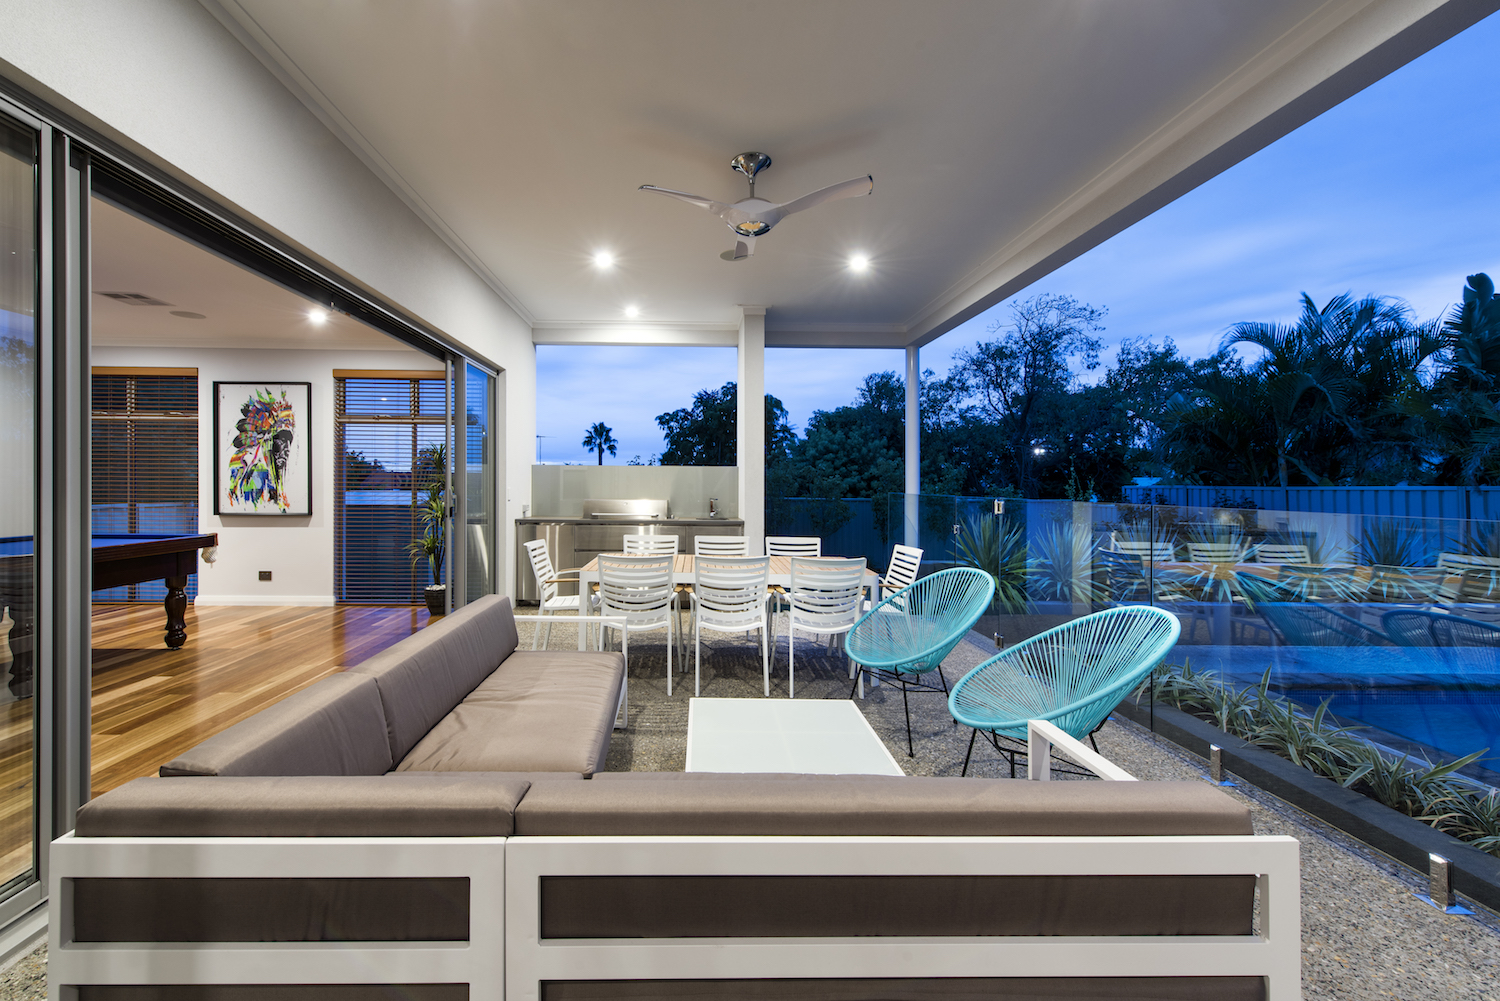 Residential Attitudes - Porch with large couch and dinner table